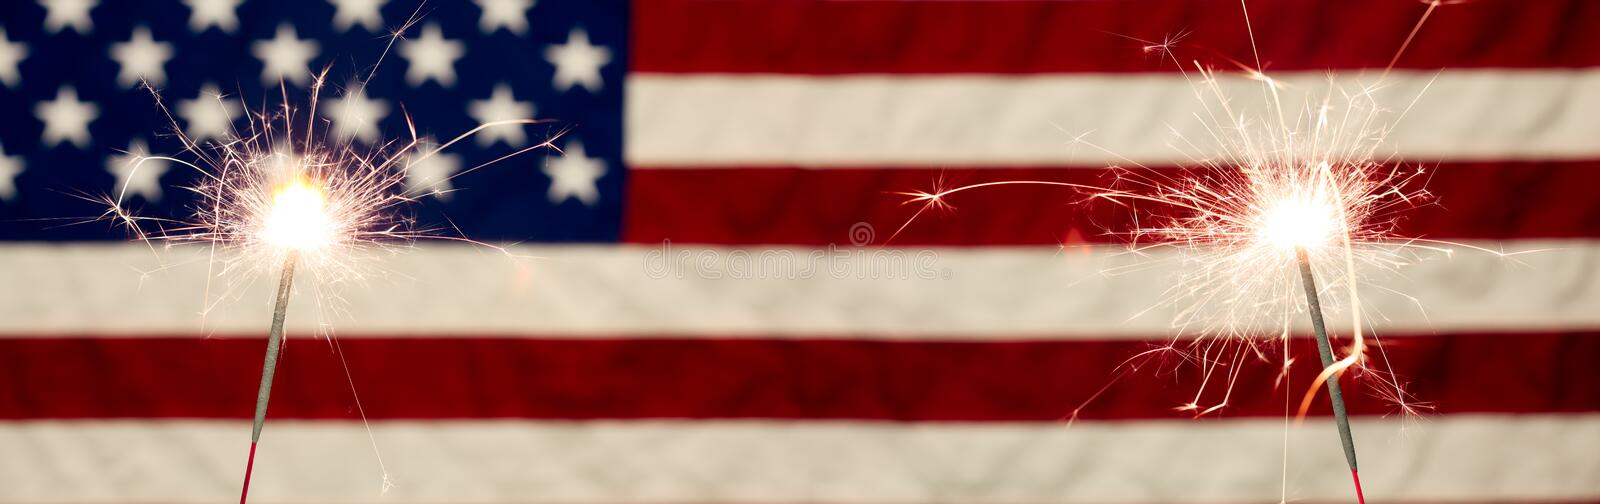 Sparklers in front the American Flag for 4th of July celebration royalty free stock photography